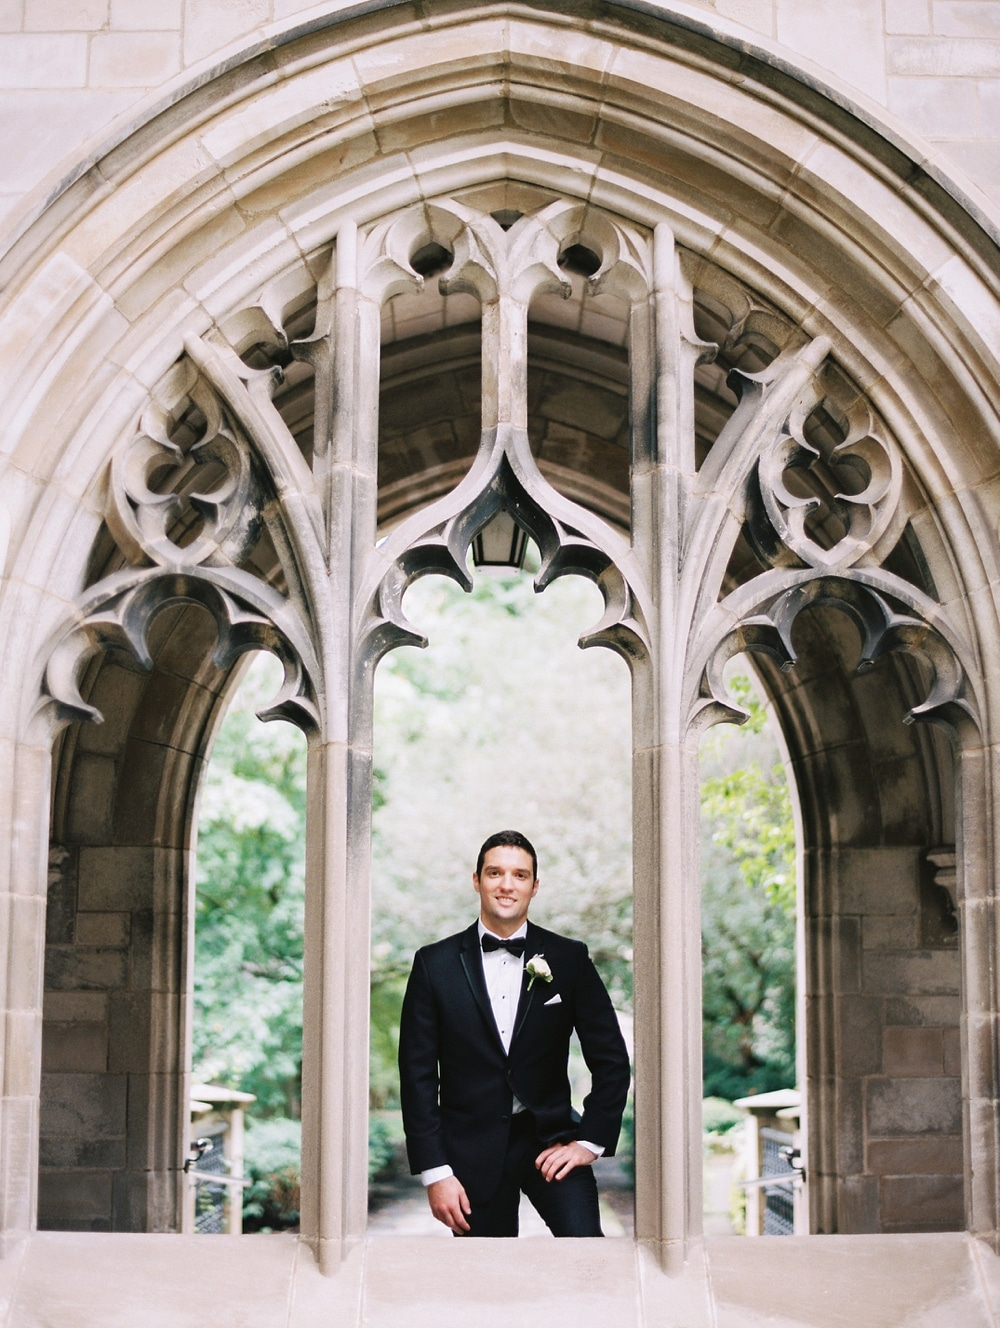 kristin-la-voie-photography-university-of-chicago-wedding-bridgeport-art-center-bond-chapel-115